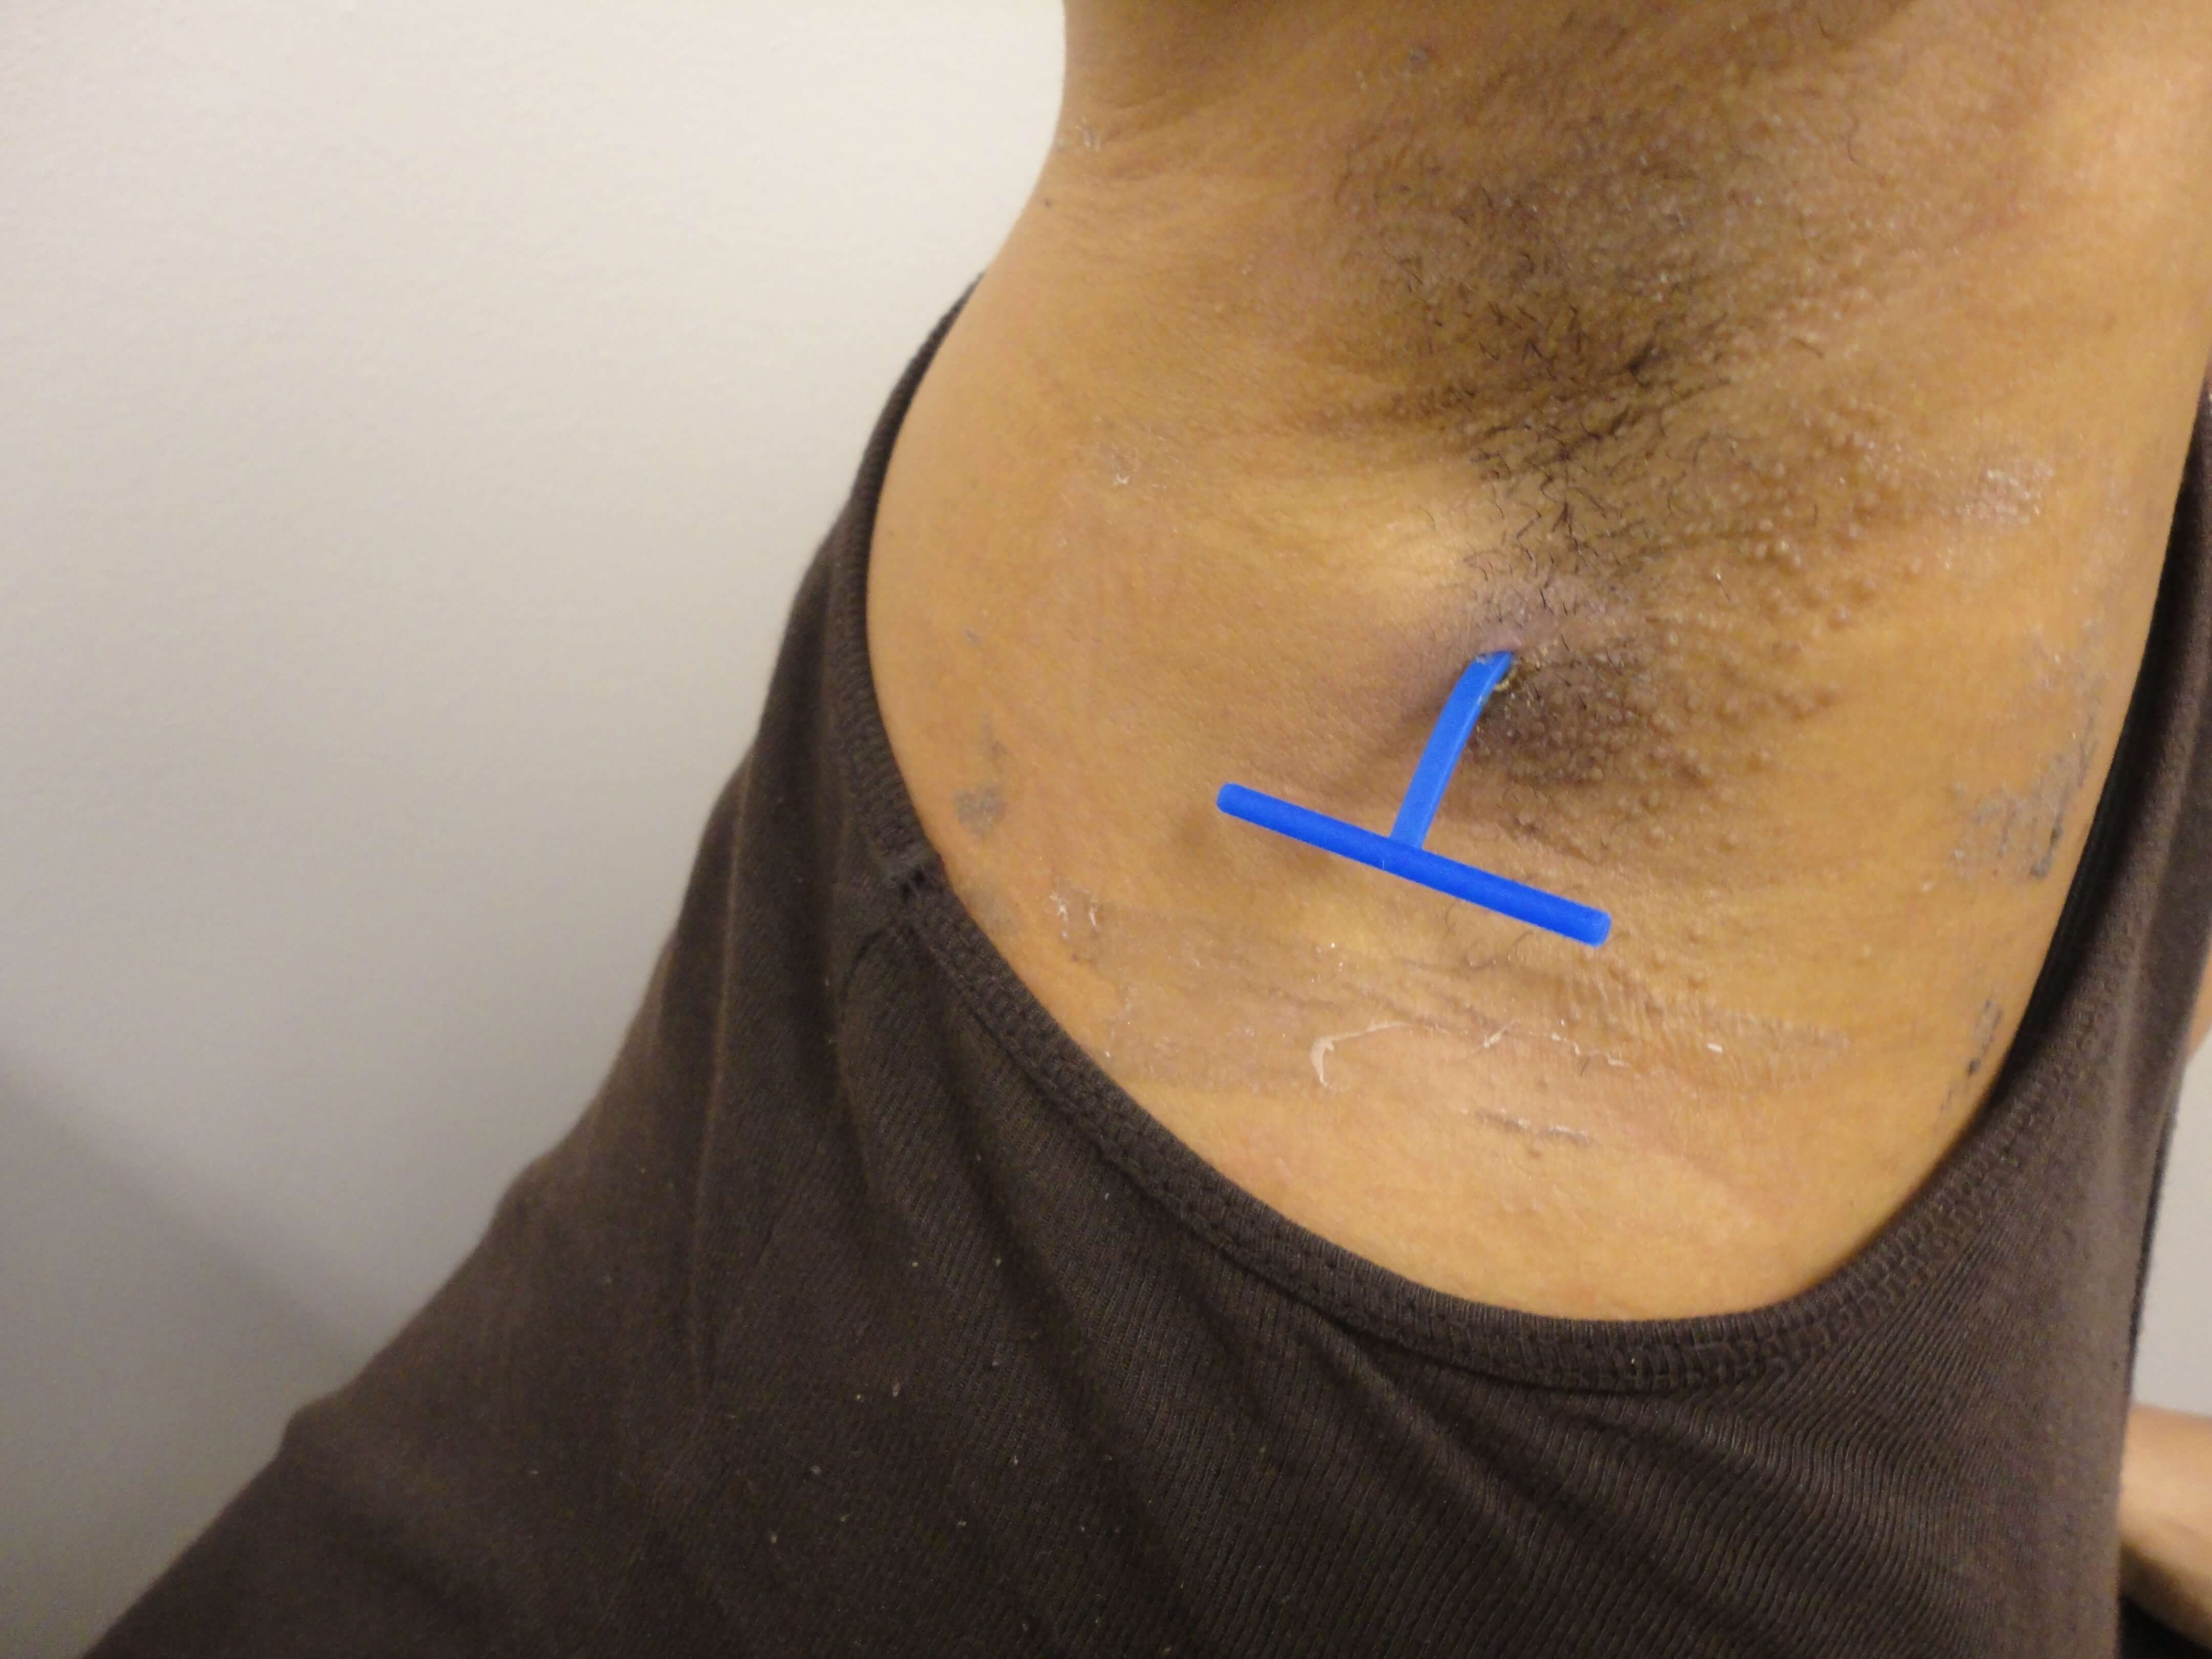 Derma-Stent being used with one incision on the abscess.